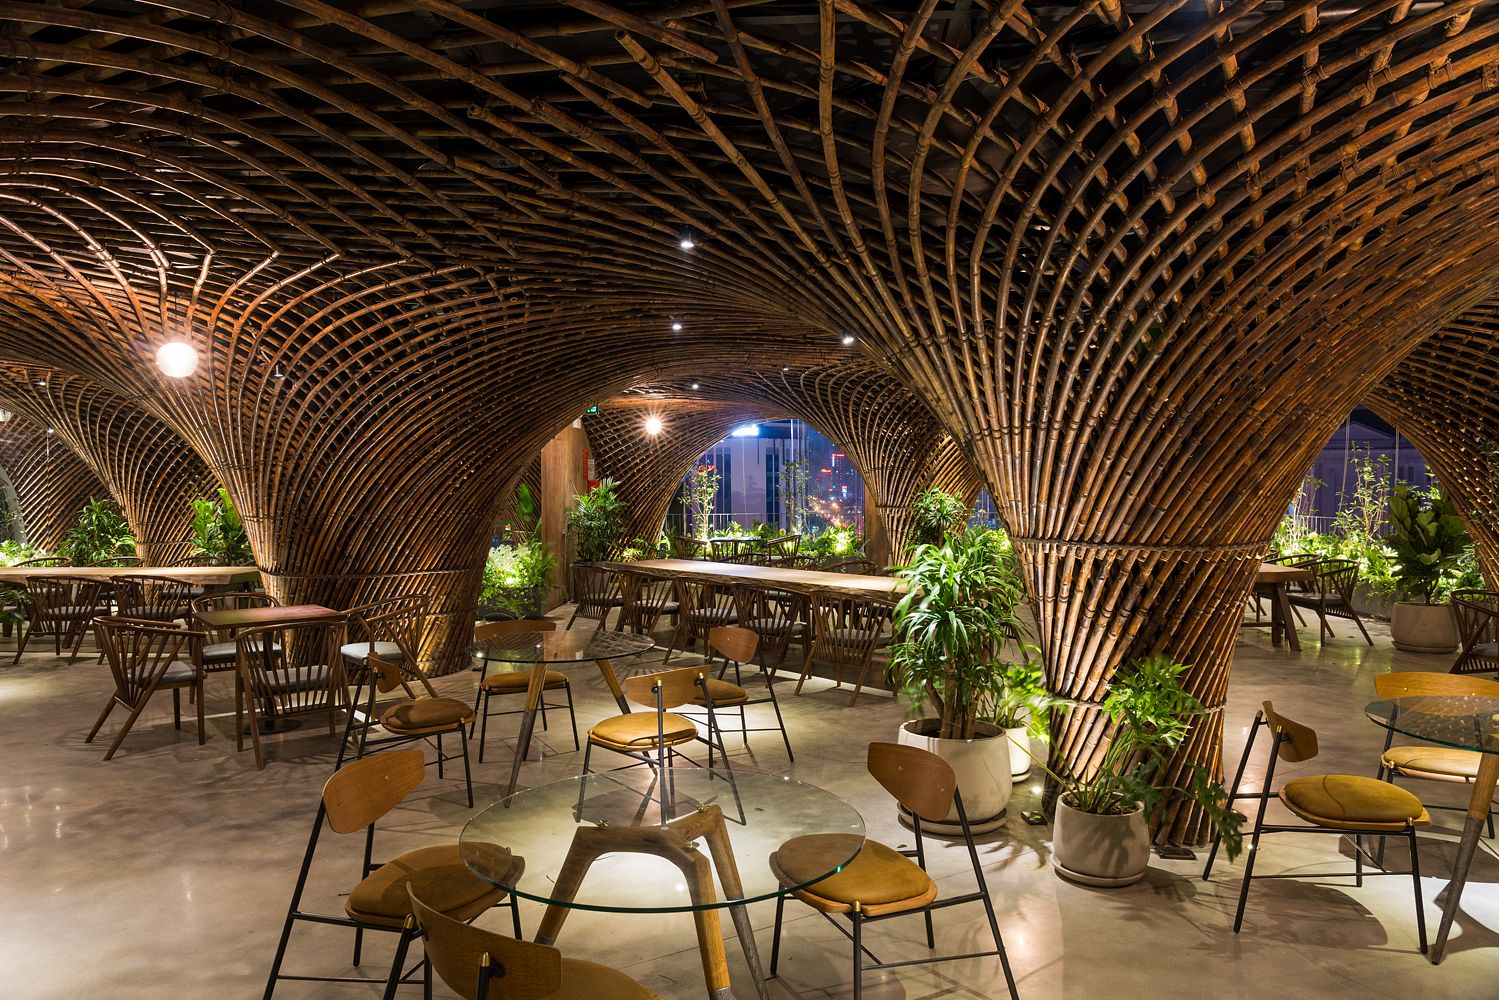 Photos Vtn Architects Transform Nghe An Rooftop Cafe With